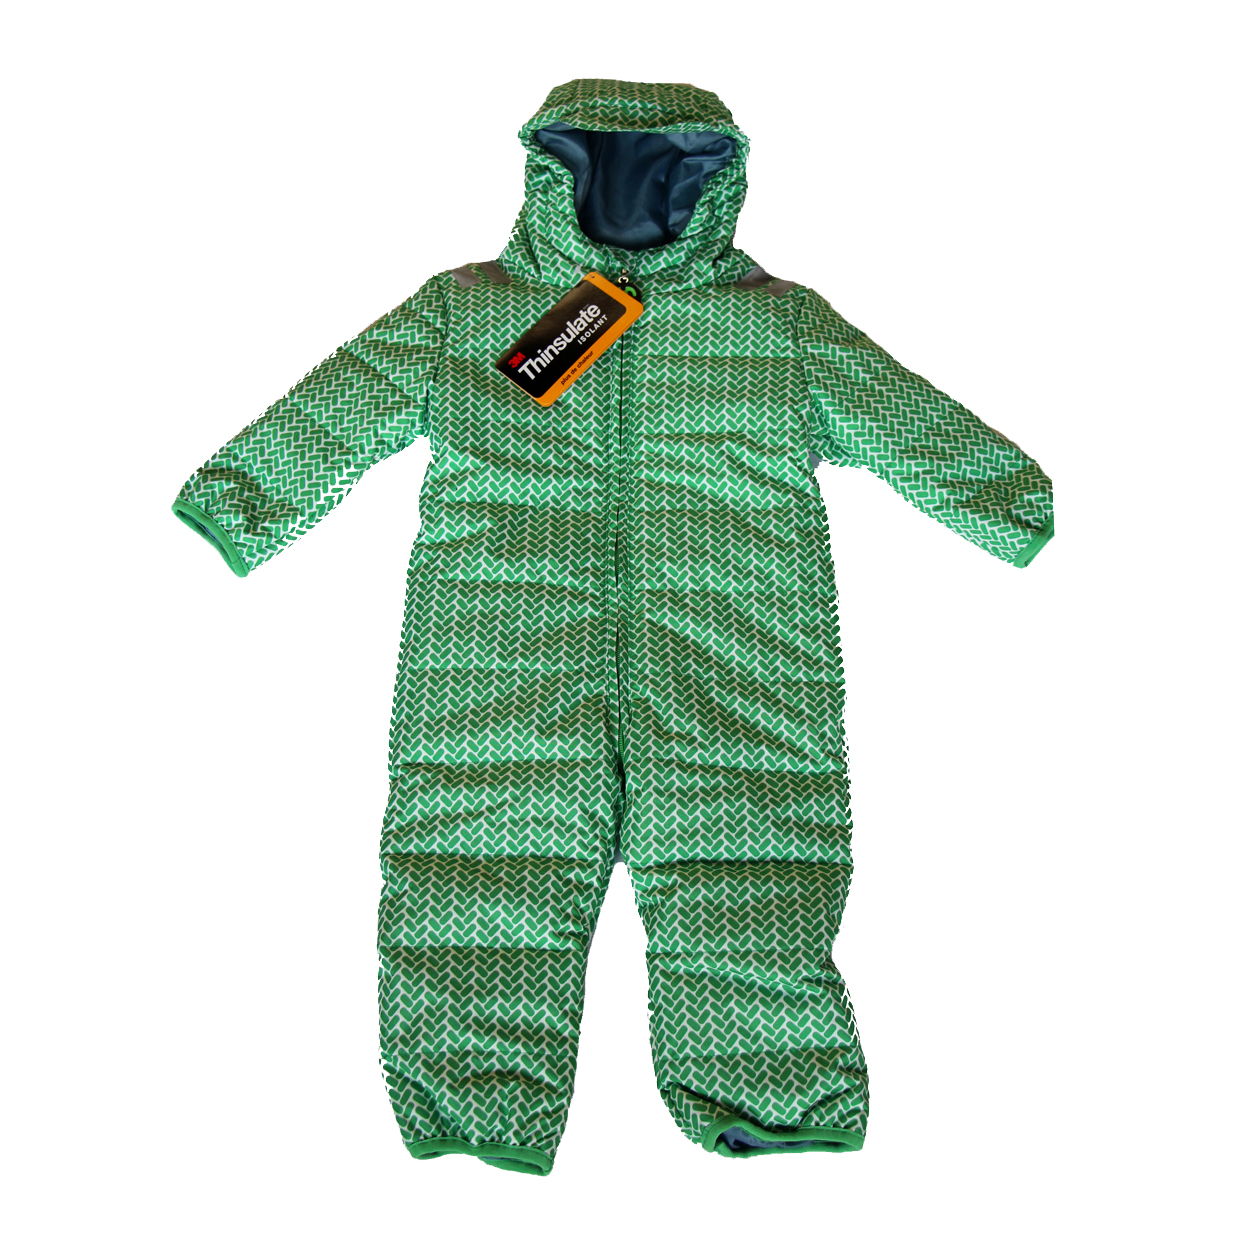 Ducksday-packshot-babysnowsuit-lex-a neu.jpg